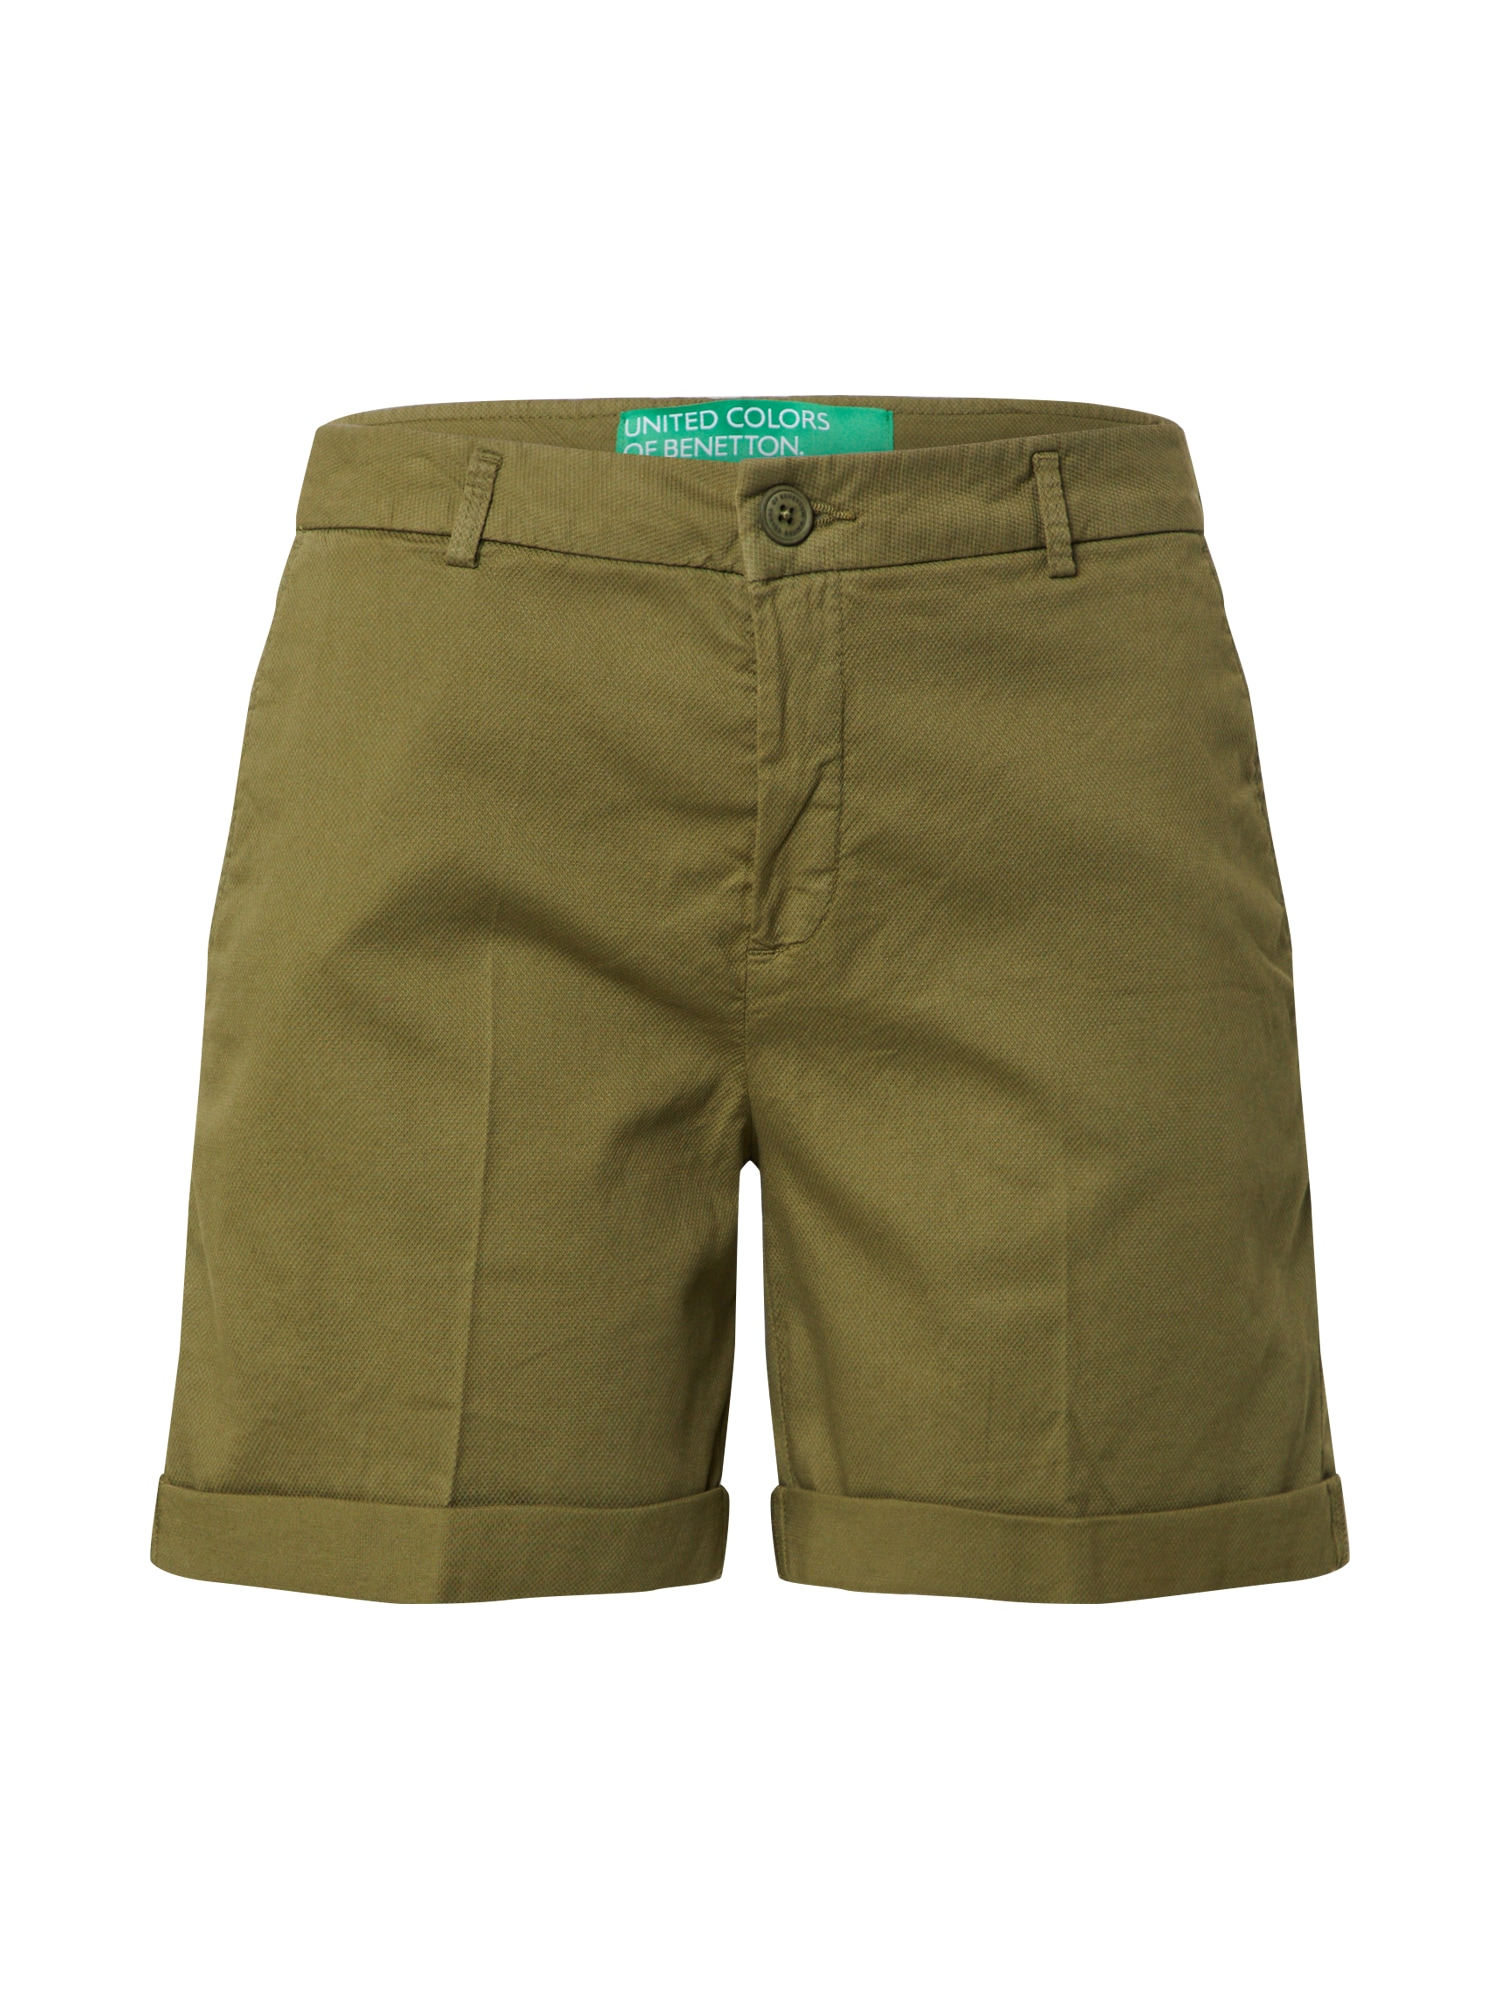 UNITED COLORS OF BENETTON Chino kalhoty  khaki